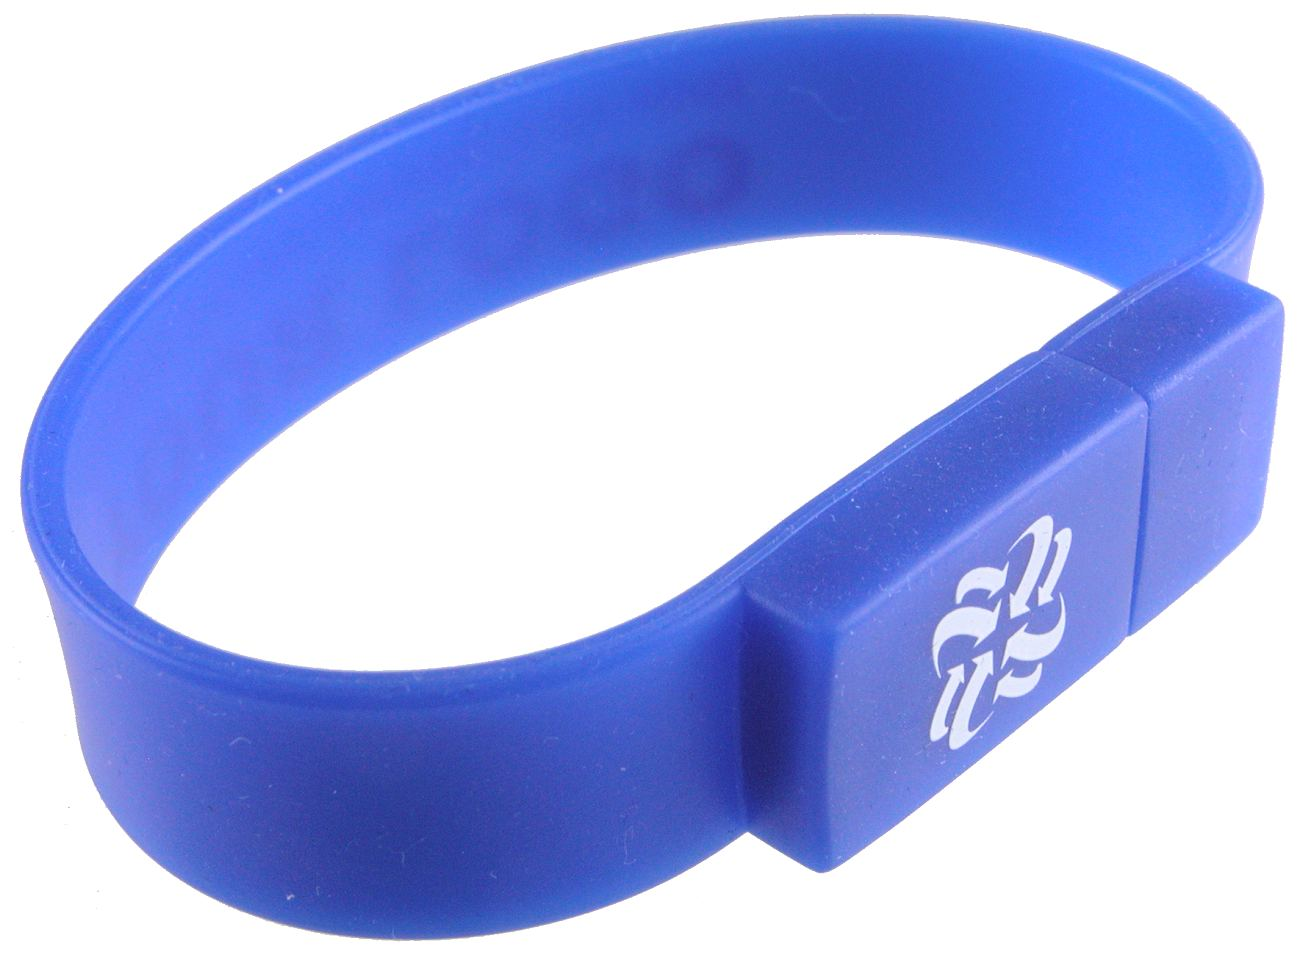 Usb Stick Wristband Blue Printed White Graphic Cd239